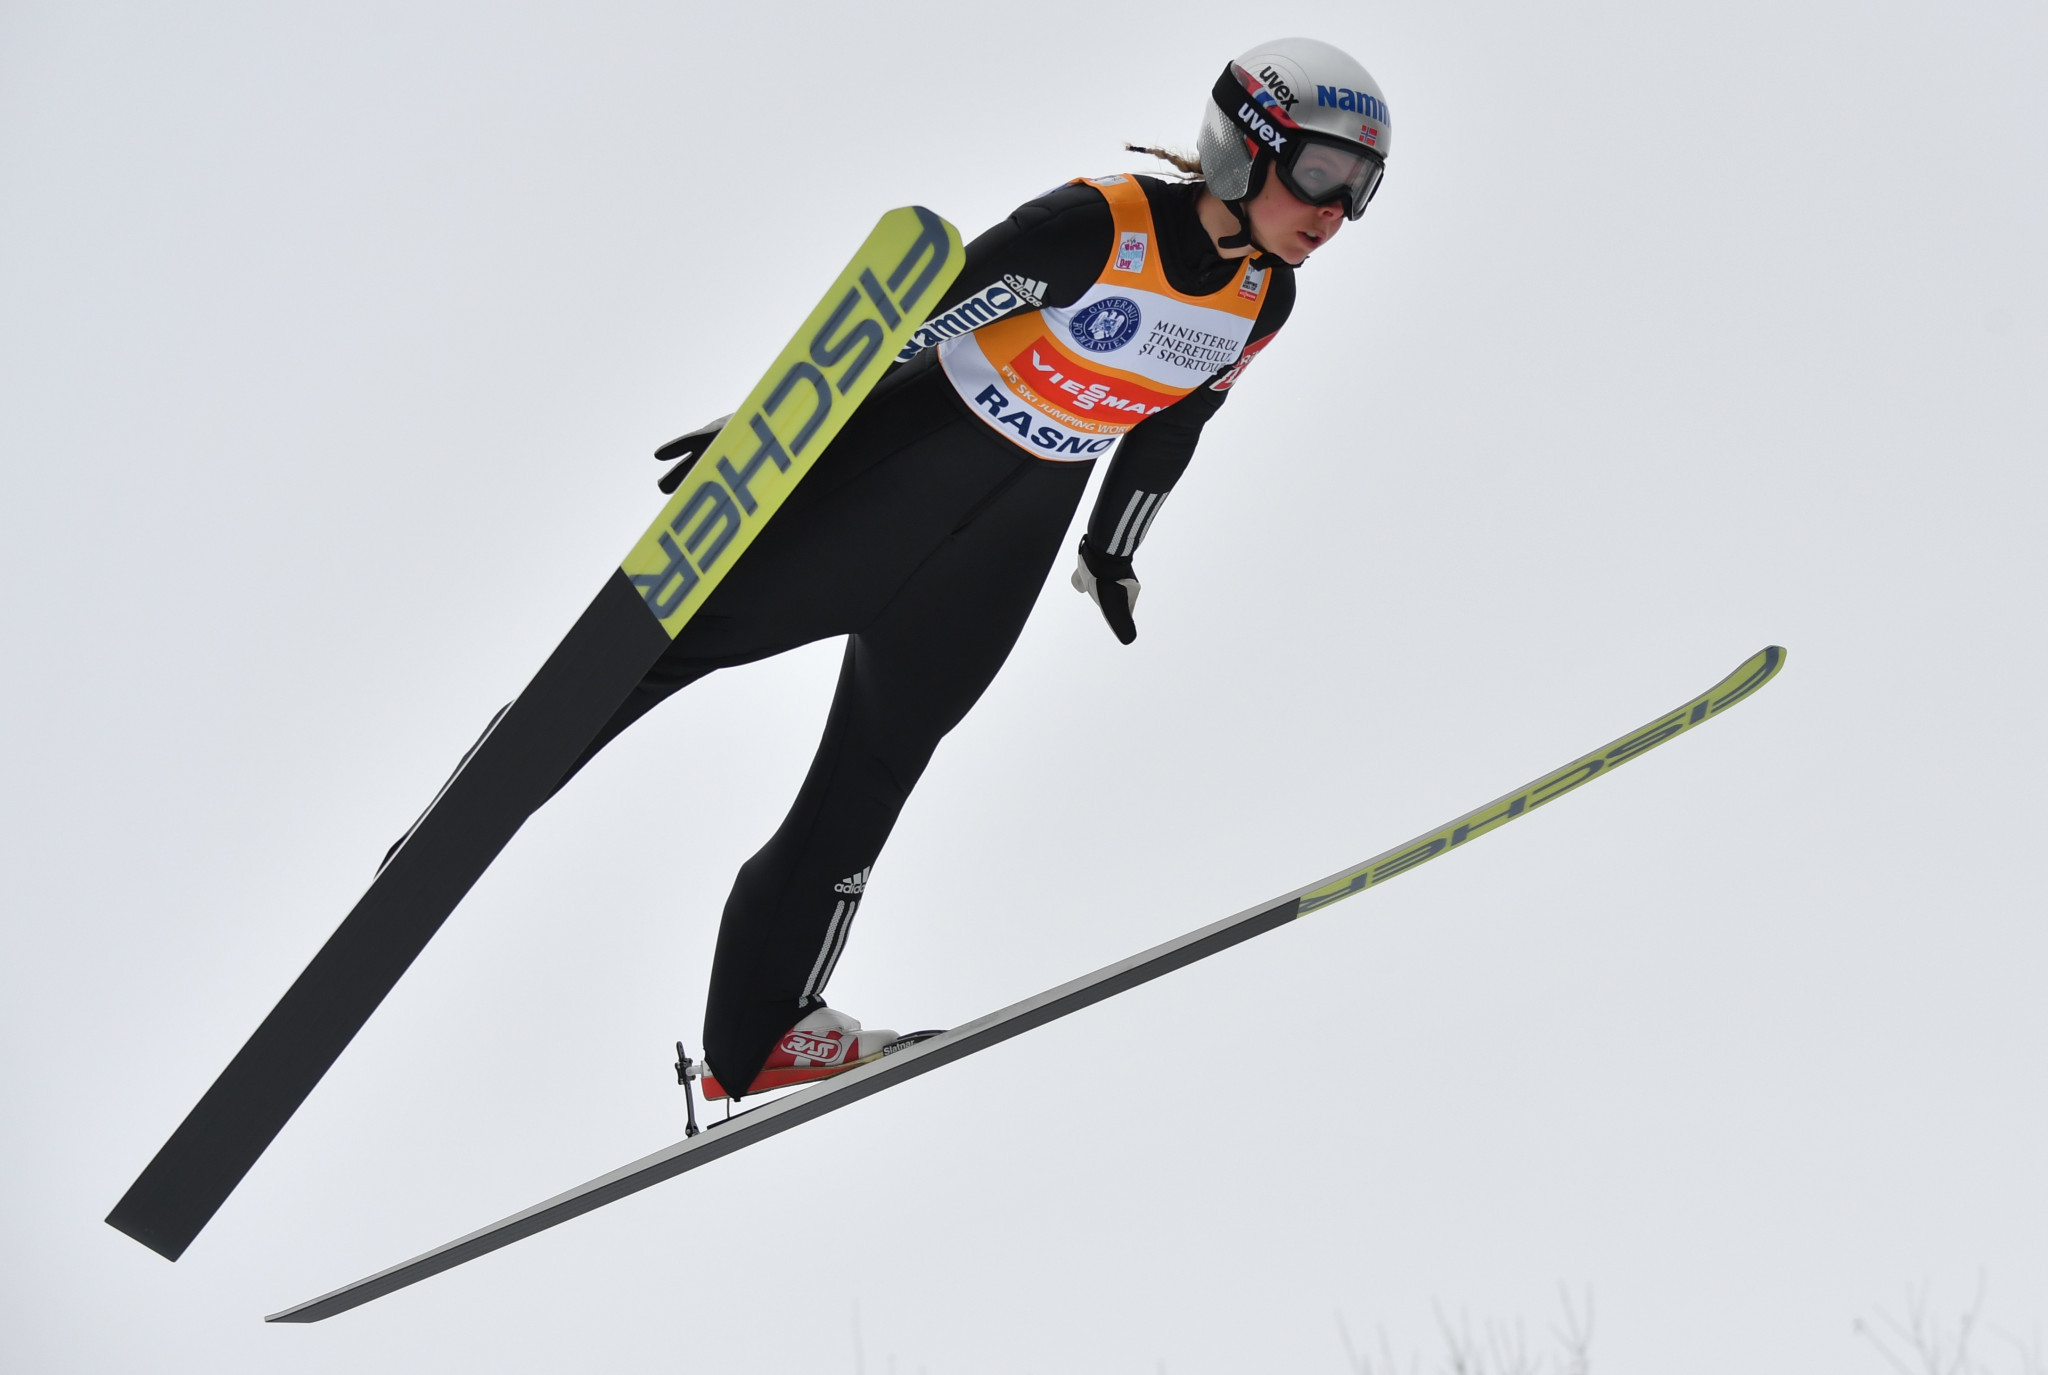 Reigning Olympic champion Maren Lundby won at the women's FIS Ski Jumping World Cup event in Rasnov ©Getty Images